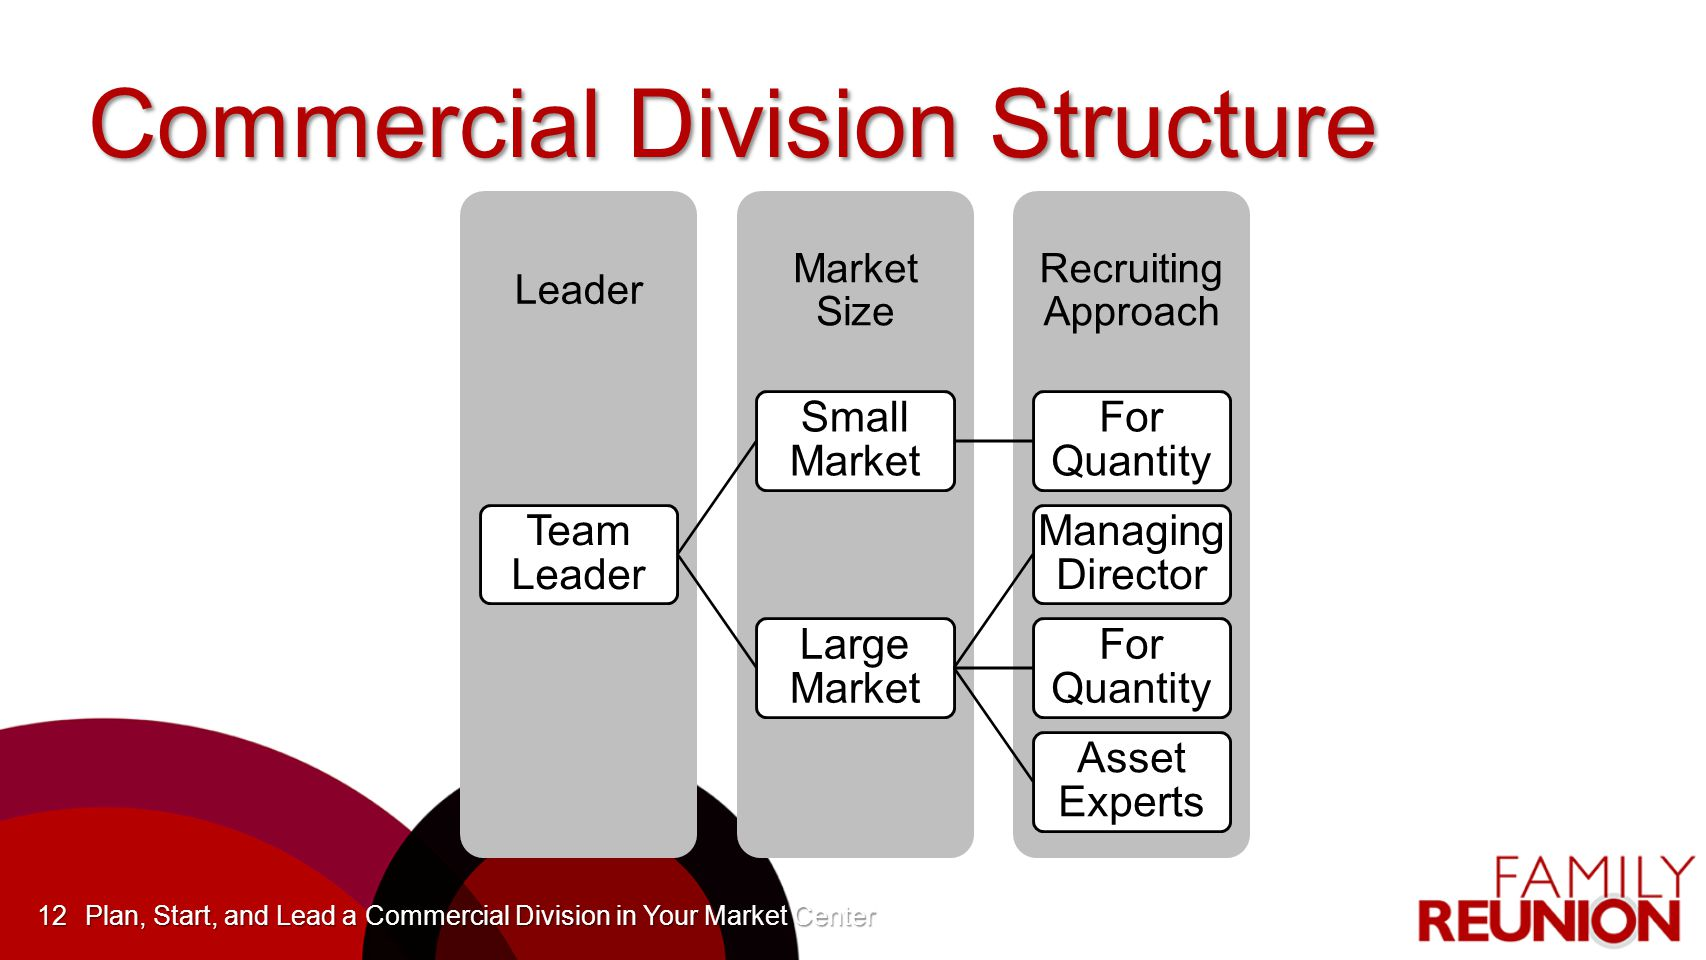 Commercial Division Structure Recruiting Approach Market Size Leader Team Leader Small Market For Quantity Large Market Managing Director For Quantity Asset Experts Plan, Start, and Lead a Commercial Division in Your Market Center12